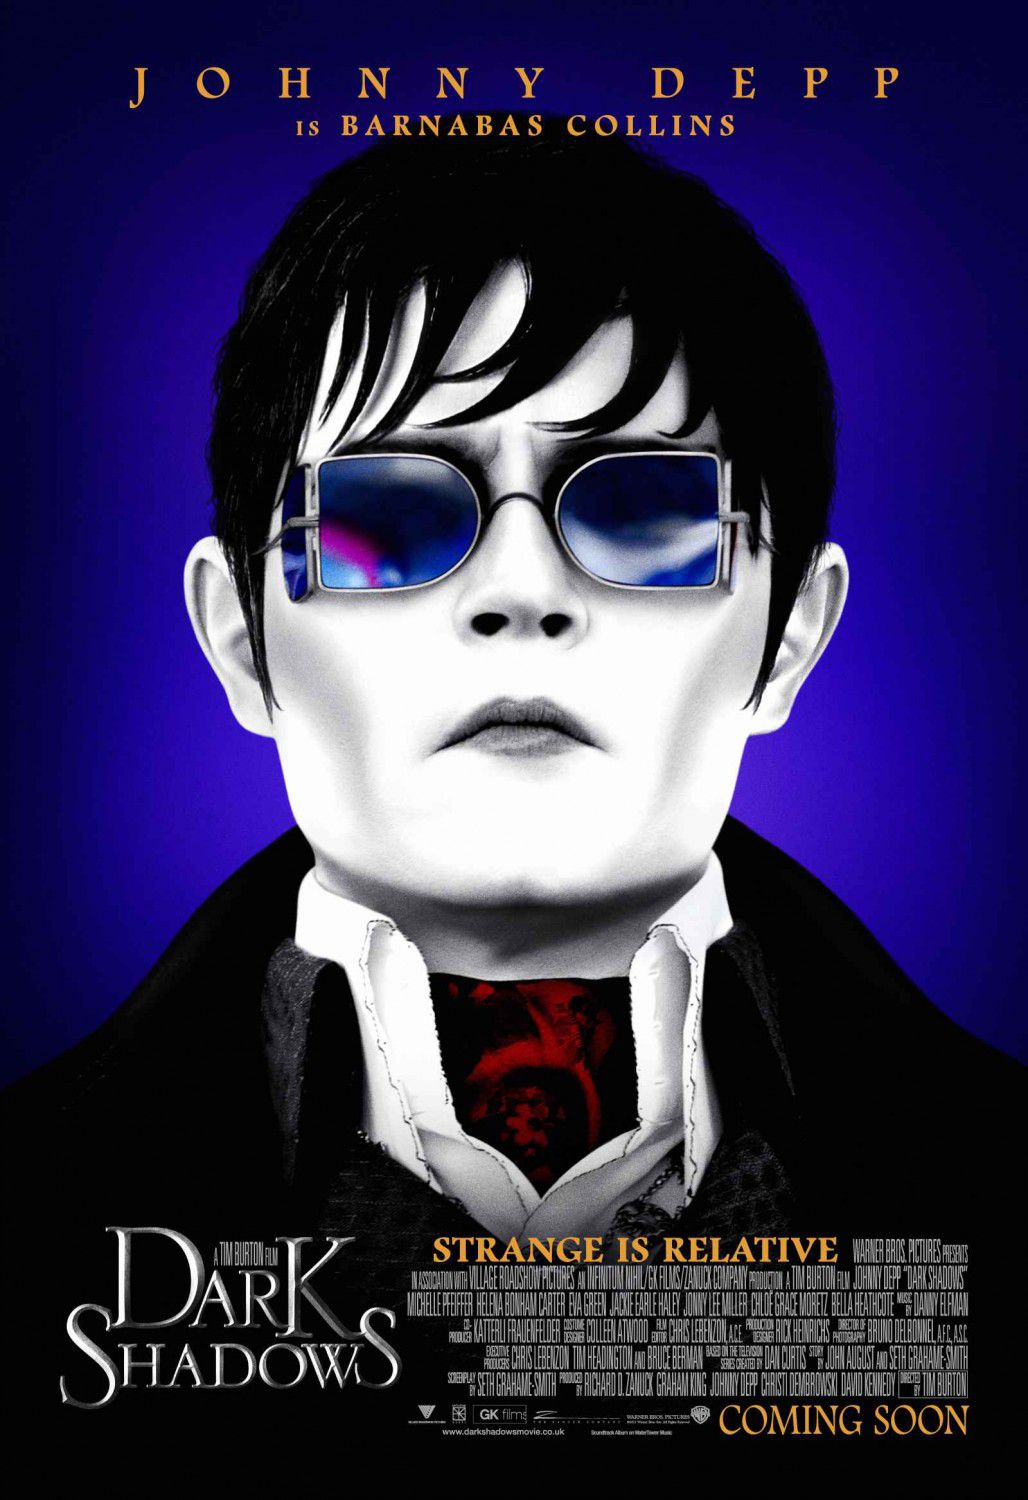 Johnny Depp - Barnabas Collins